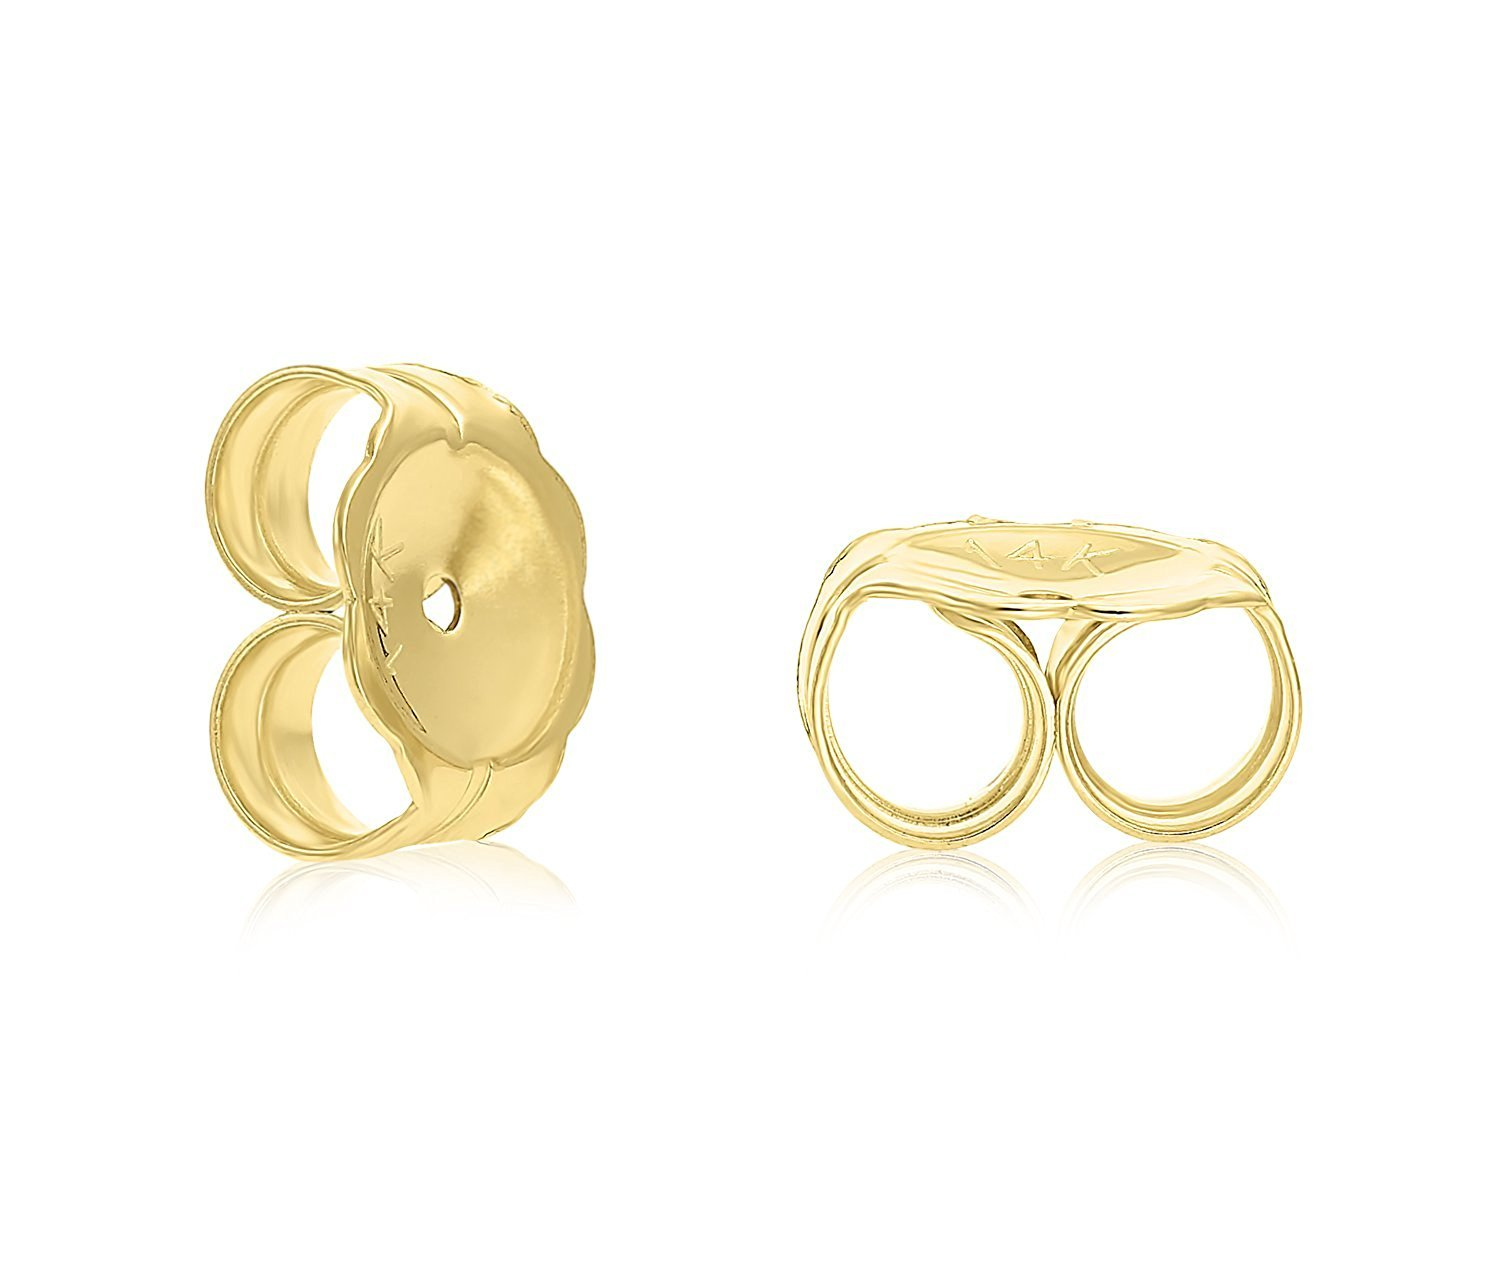 14k Yellow Gold 6mm Polished Ball Stud Earrings with Secure and Comfortable Friction Backs by Art and Molly (Image #2)